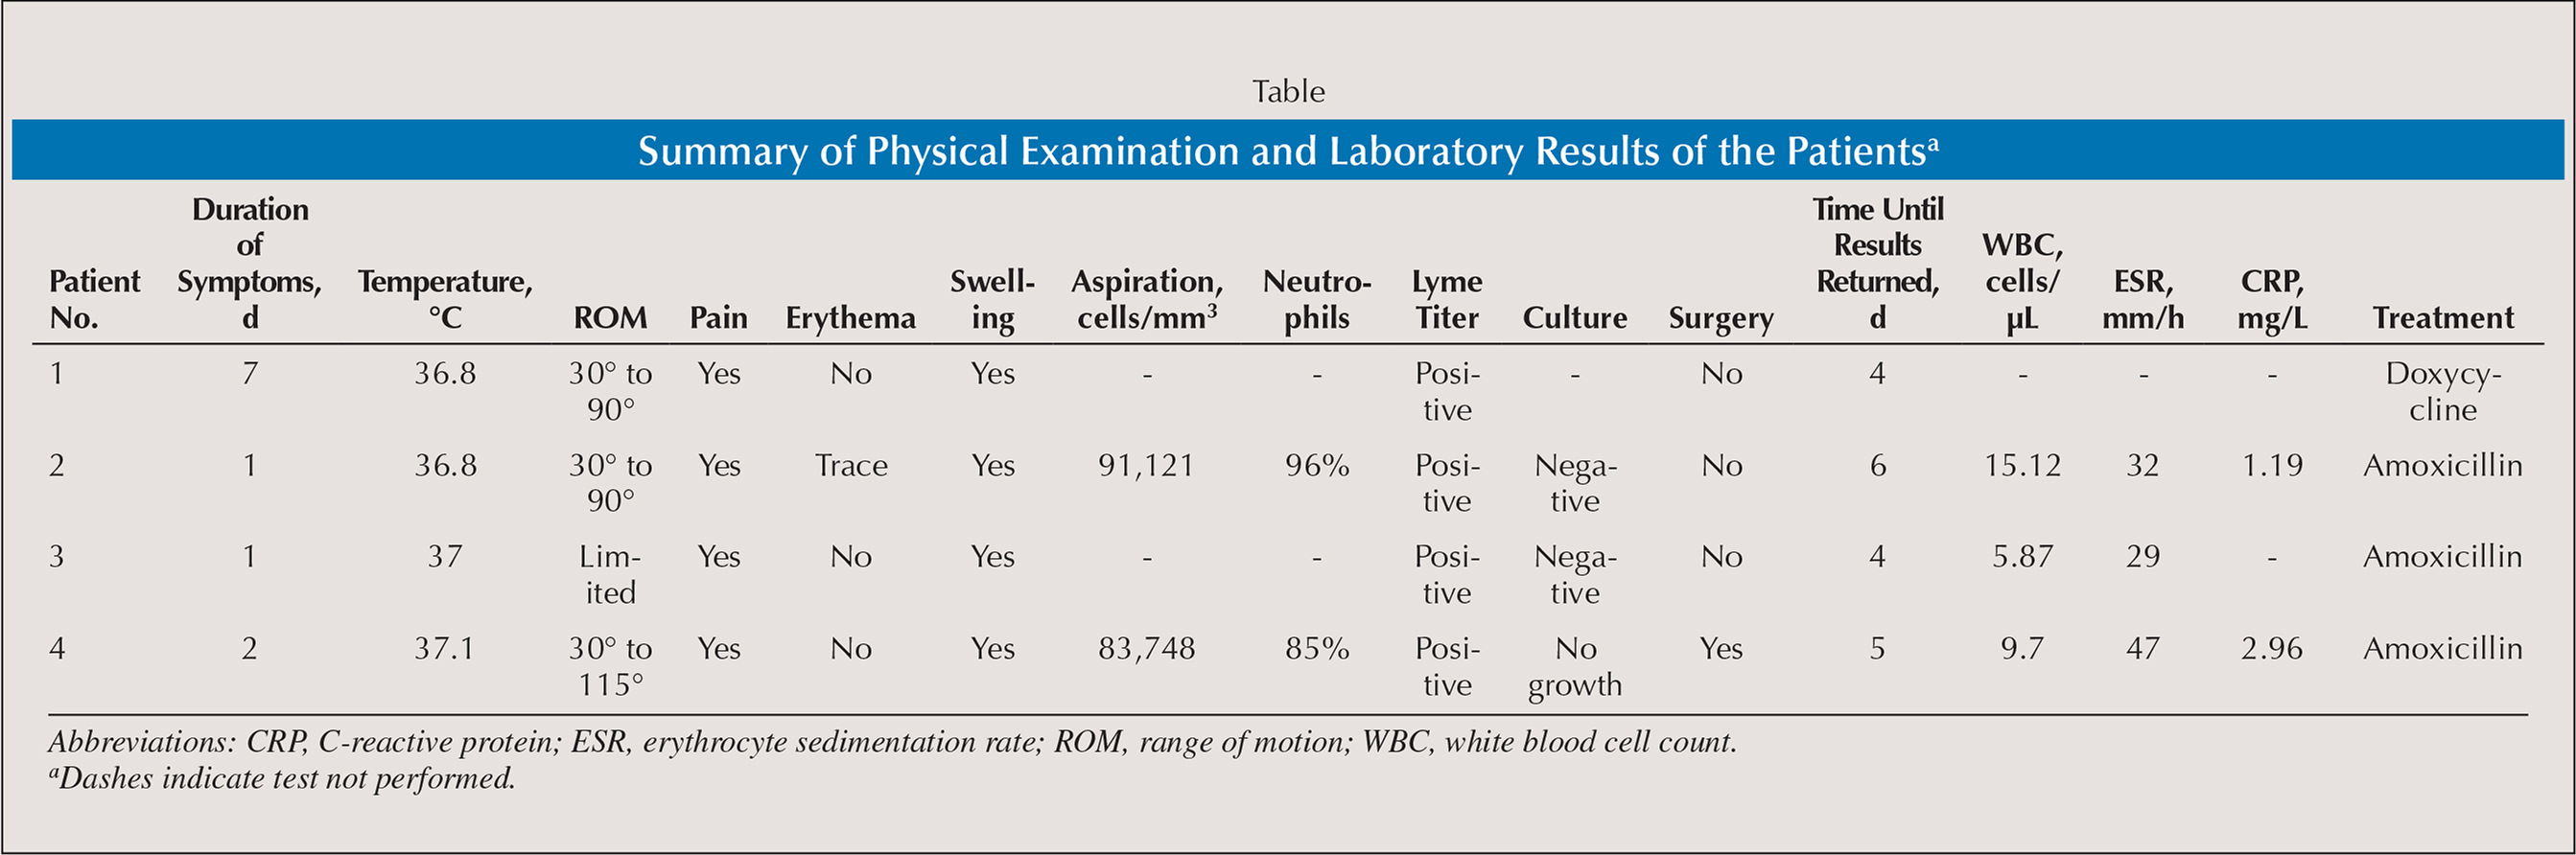 Summary of Physical Examination and Laboratory Results of the Patientsa